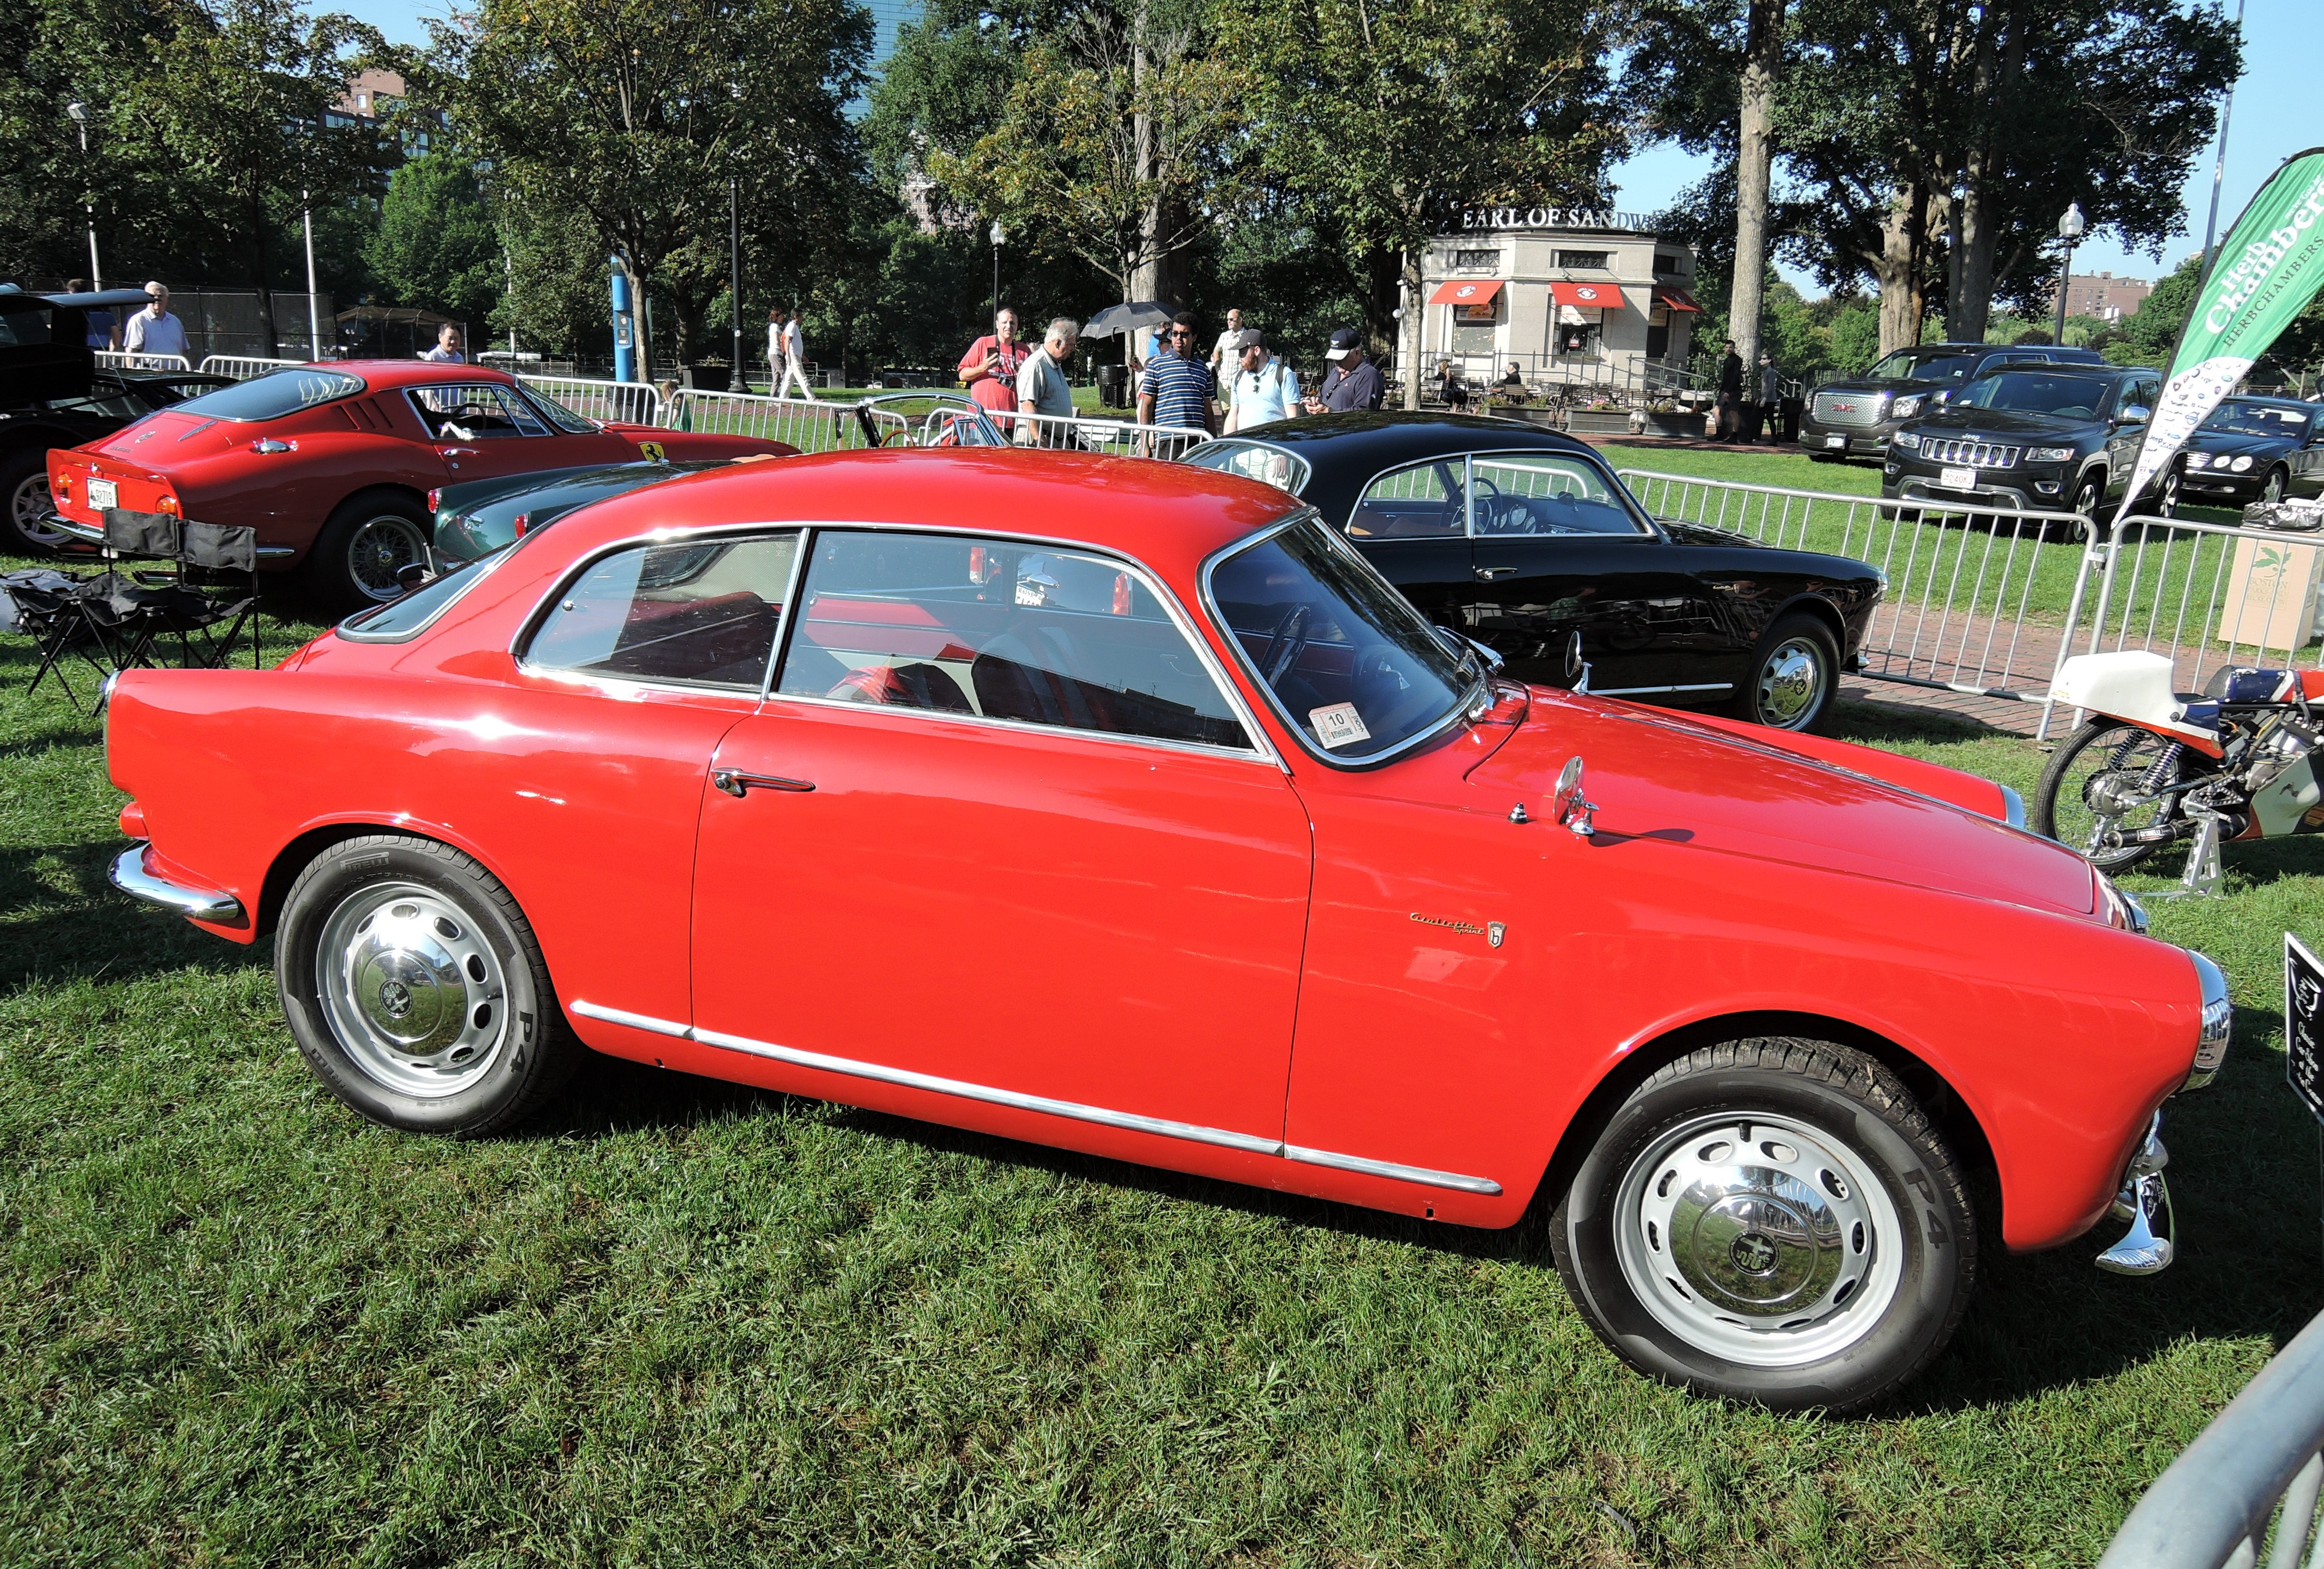 red 1959 Alfa Romeo Giulietta 750 Sprint - The Boston Cup 2017